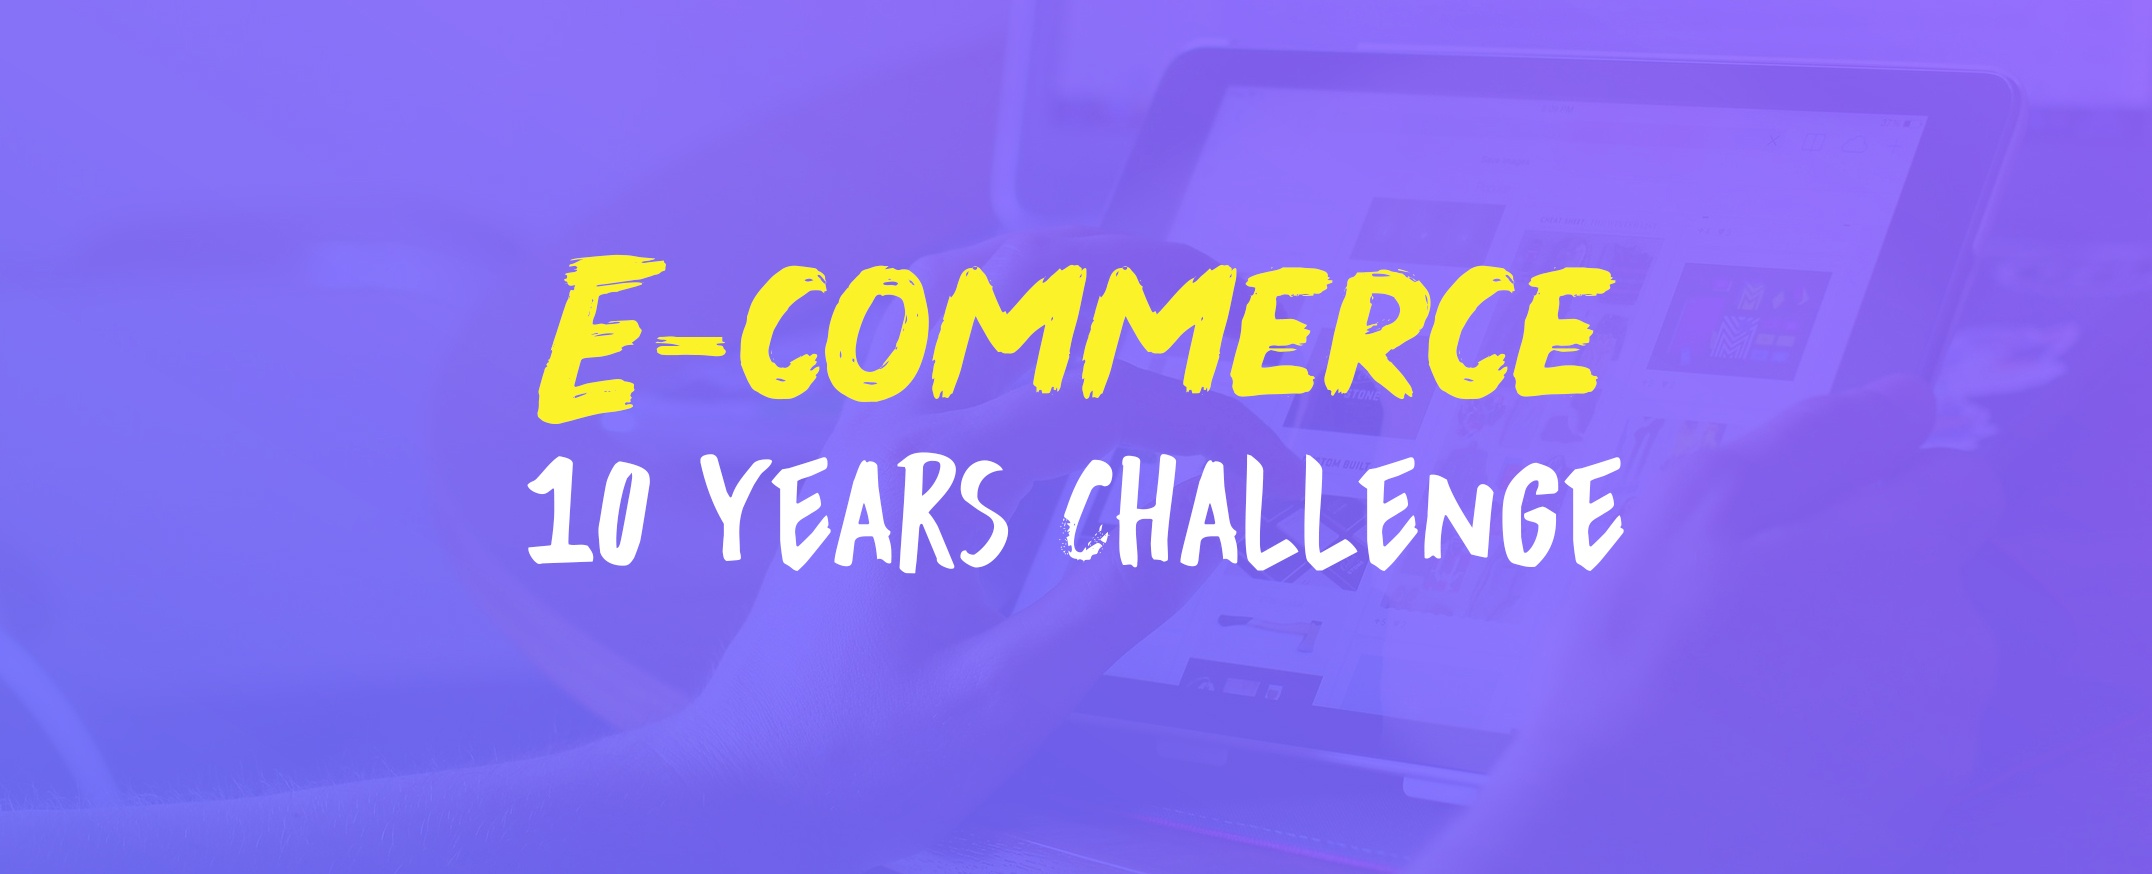 Ecommerce-10-Years-Challenge